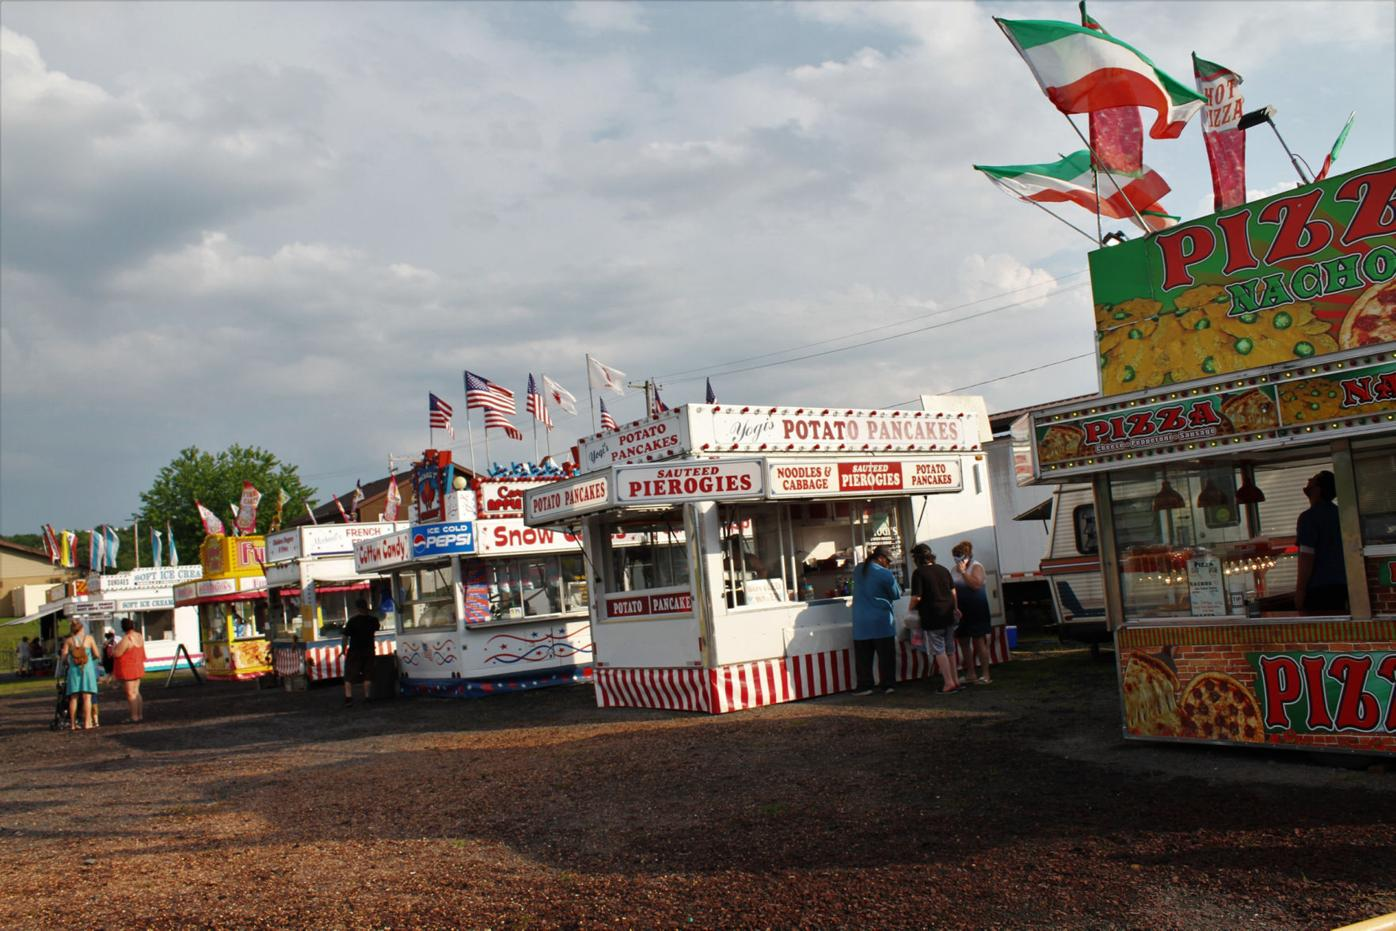 Jessup Hose Co. No. 2 Carnival Grounds